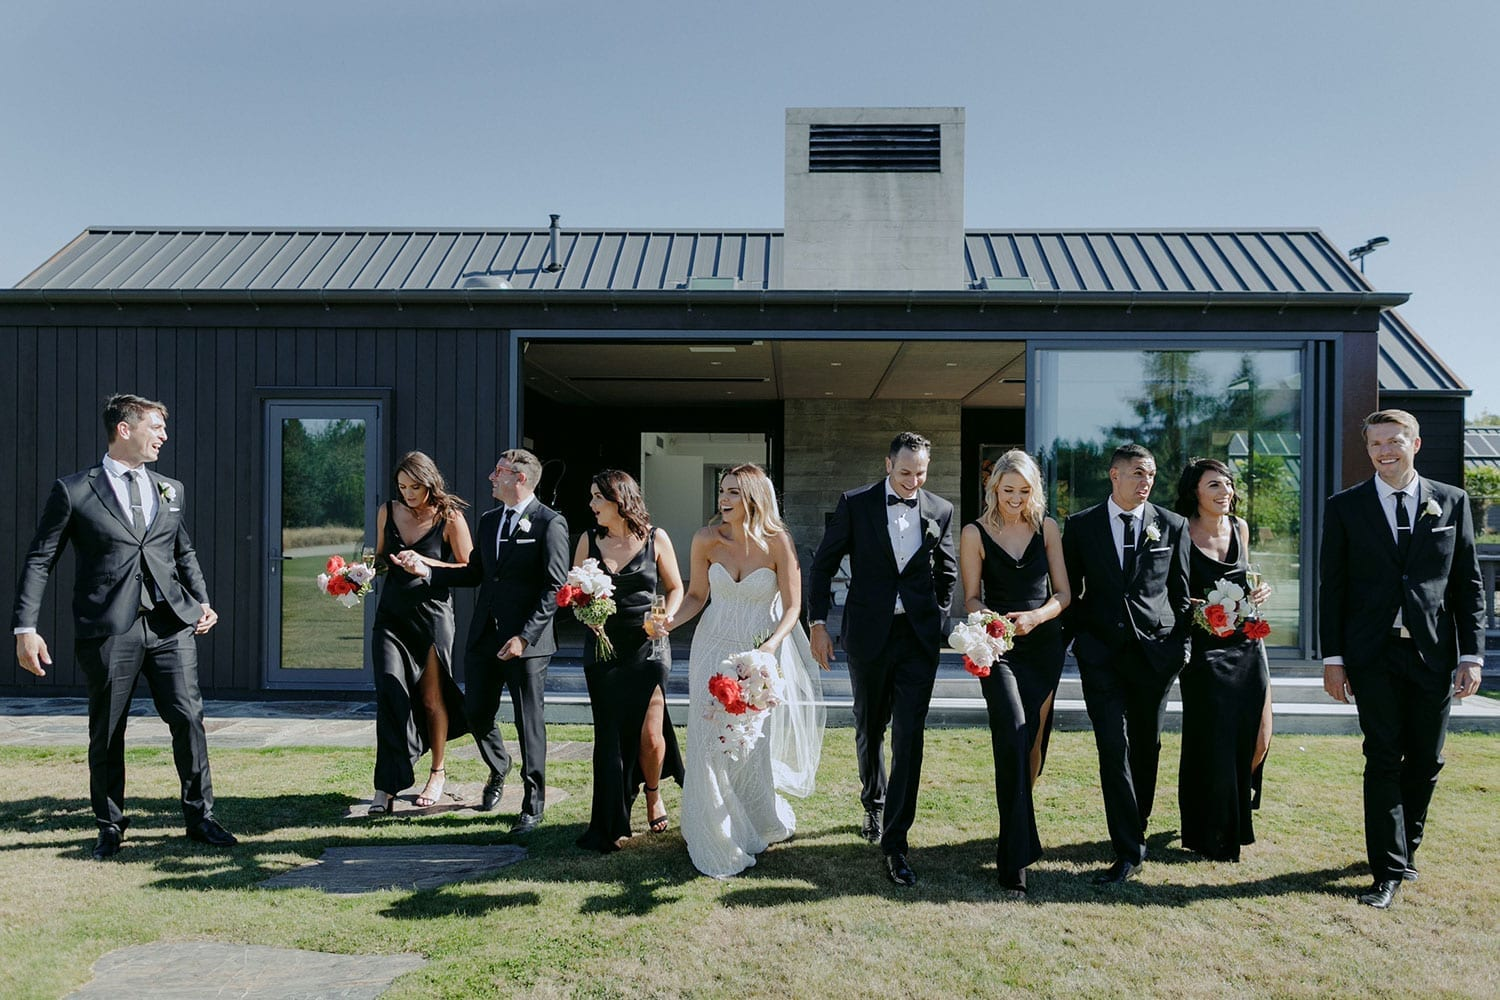 Vinka Design Features Real Weddings - bride in custom made gown, a combination of our Indi wedding dress with added beading appliqued and sewn by hand, over the top of a nude semi sheer base. With bridal party in line